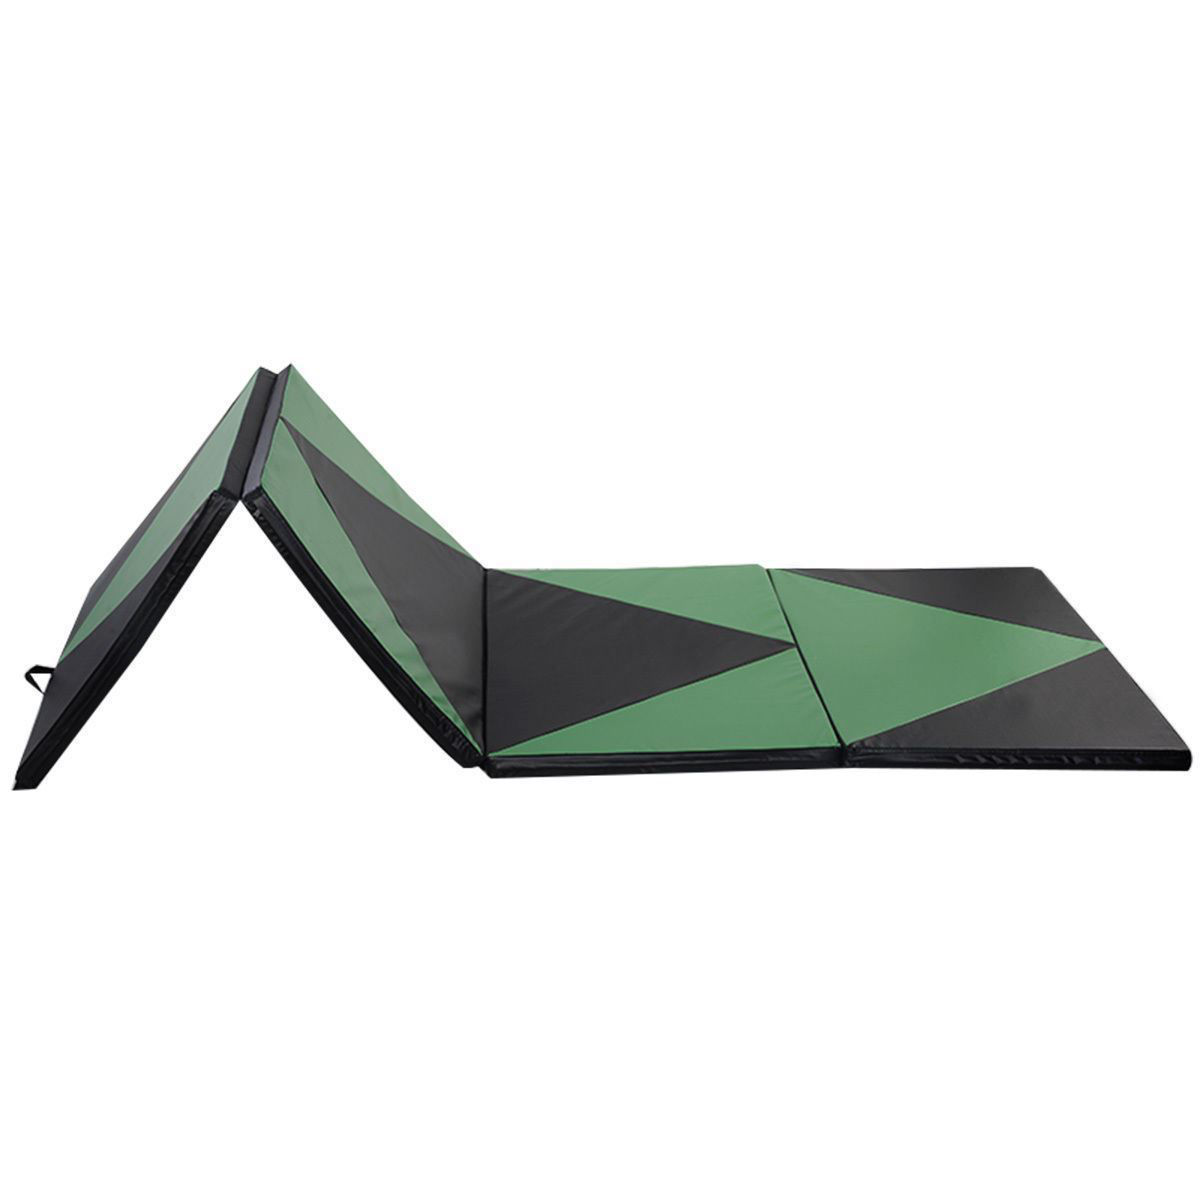 Picture of Folding Tumbling Gymnastics Mat Green / Black - 4' x 10' x 2""